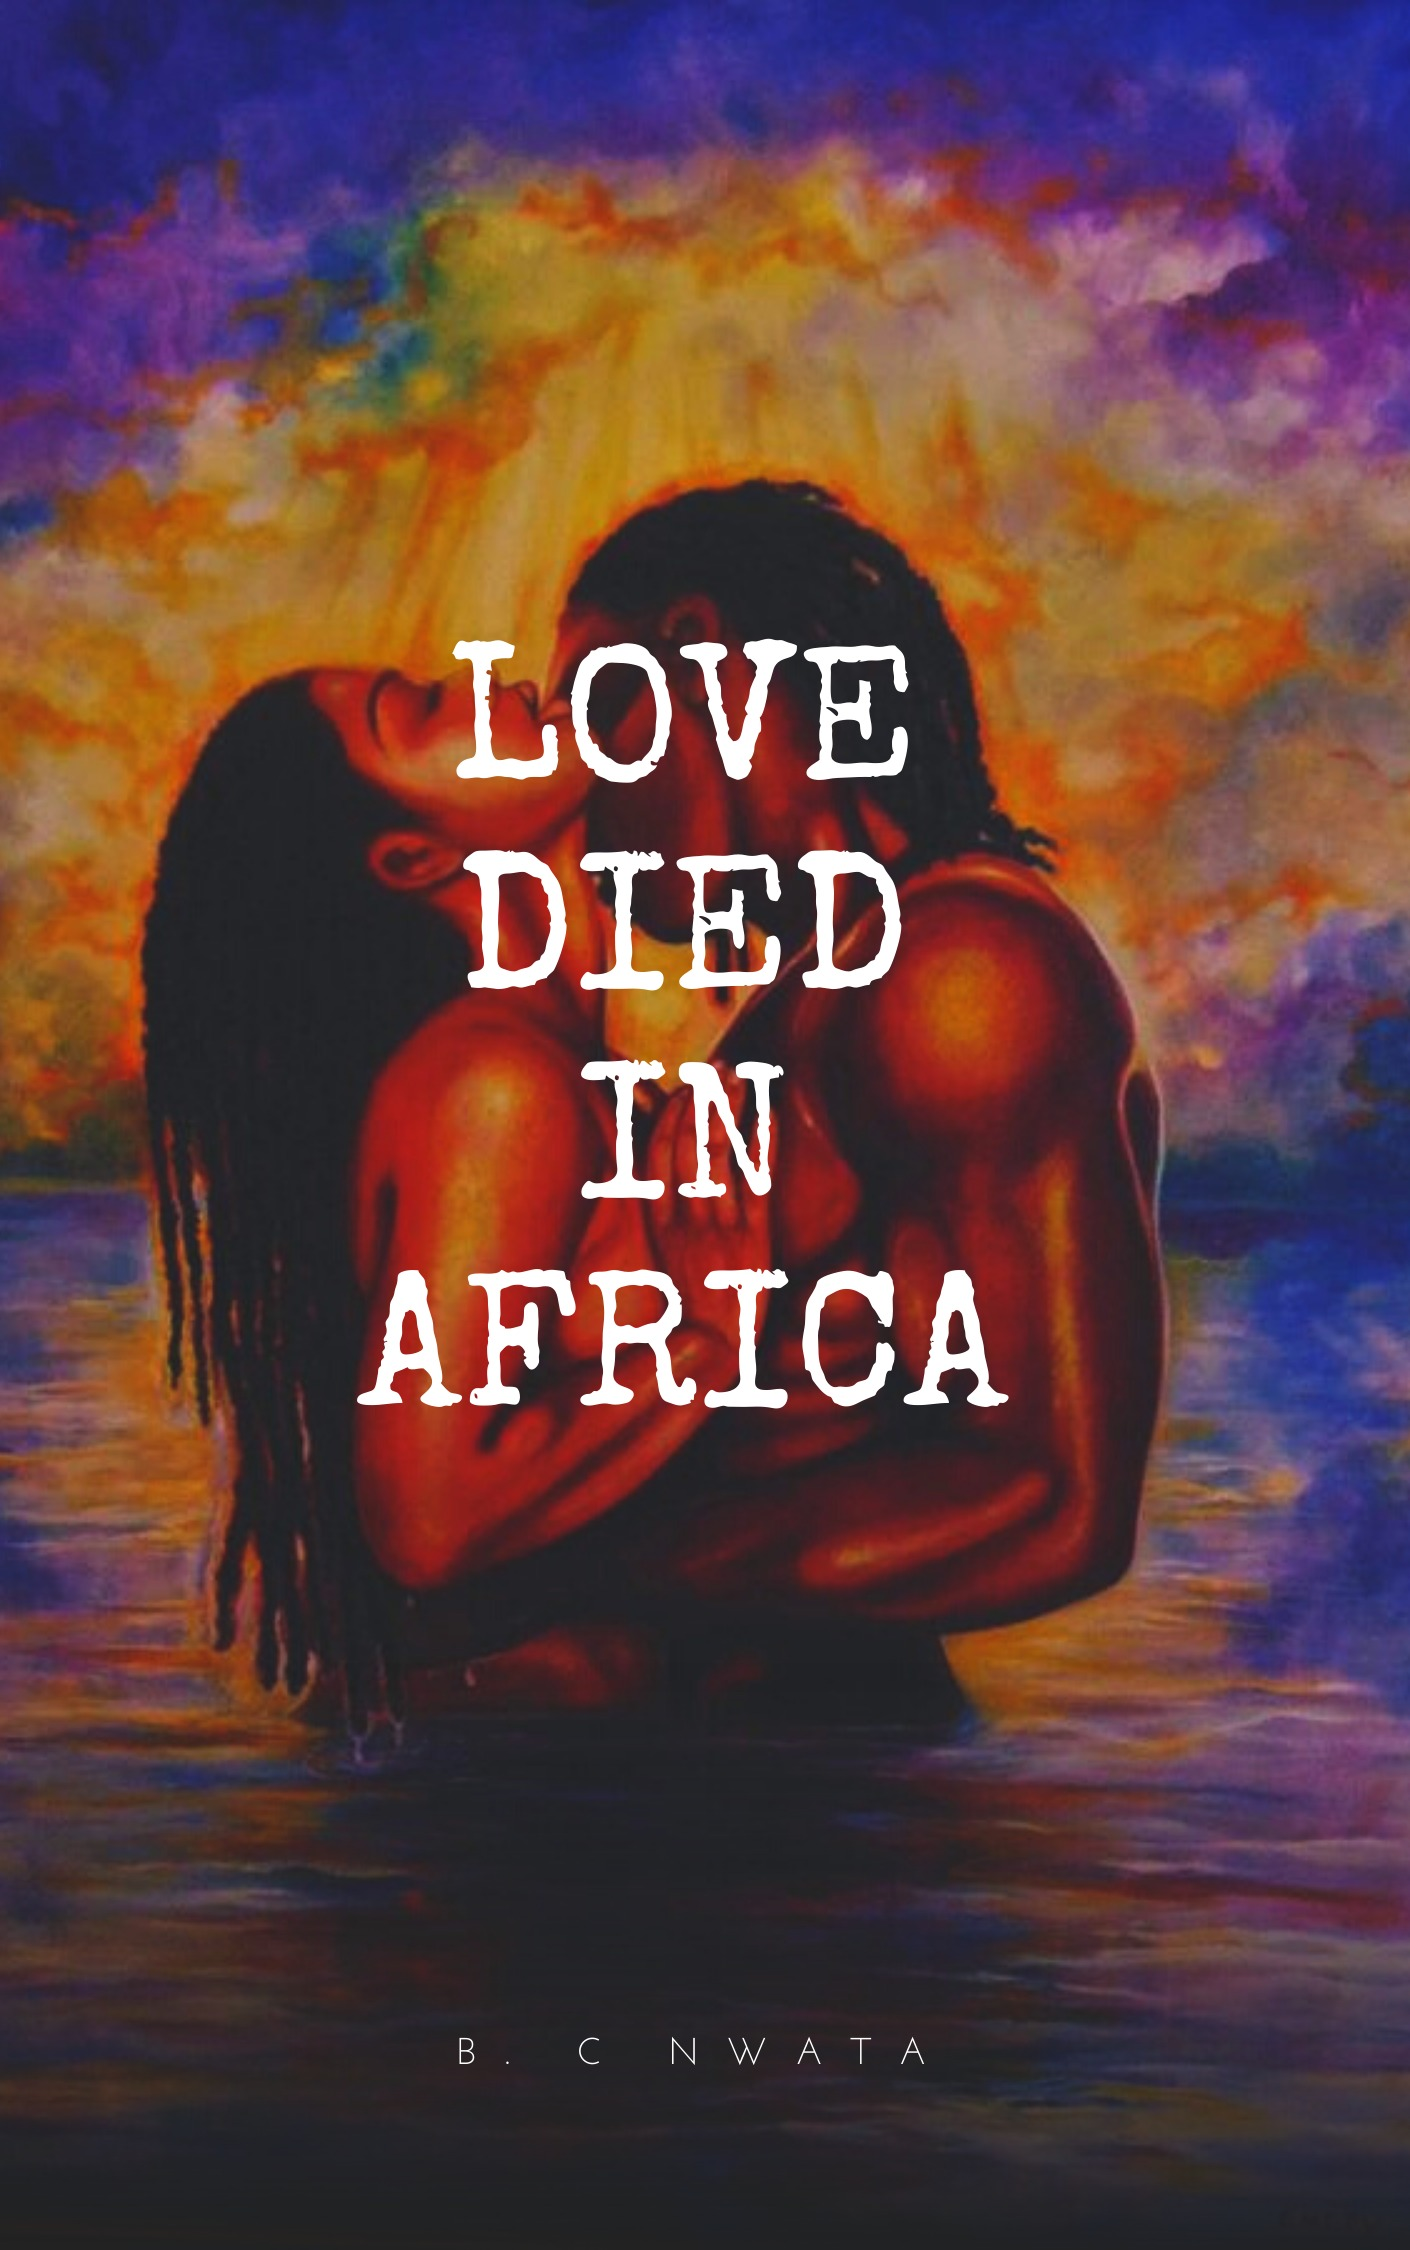 LOVE DIED IN AFRICA